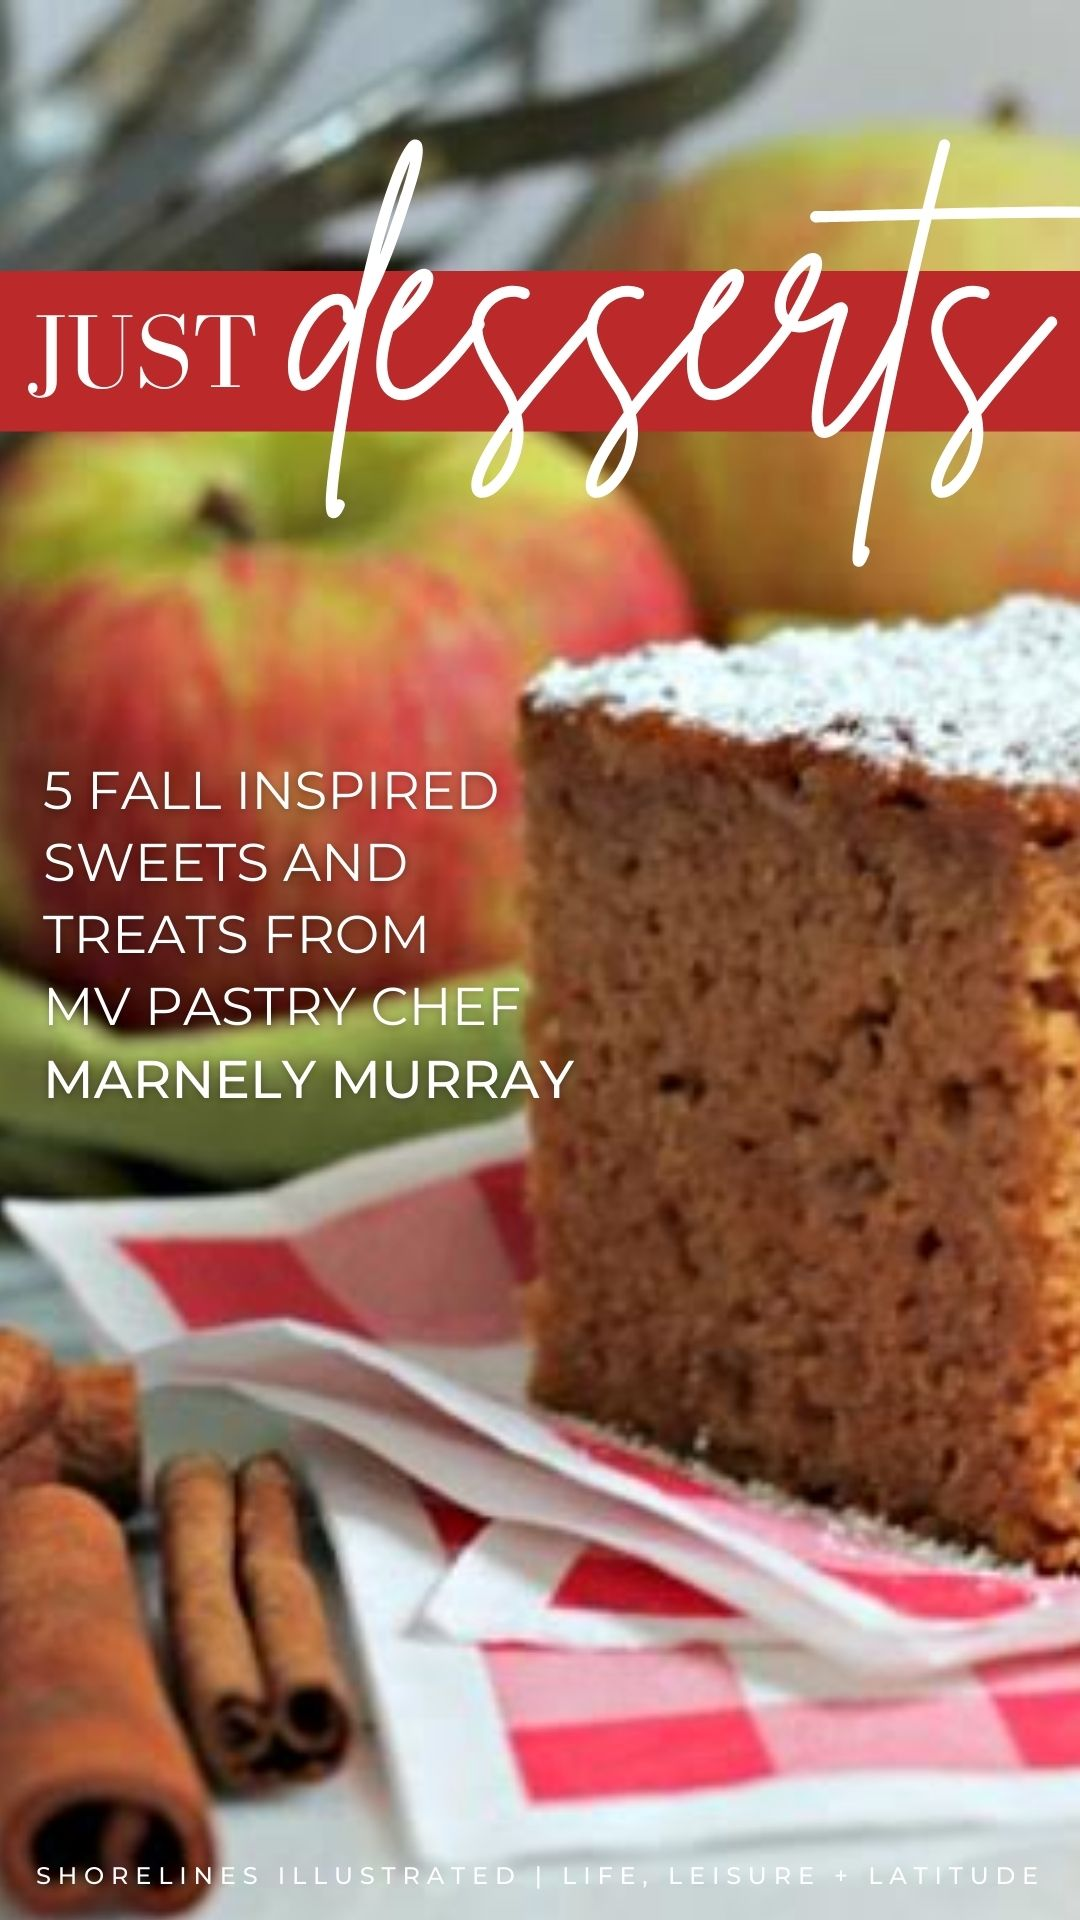 marnely murray cooking with books PIN